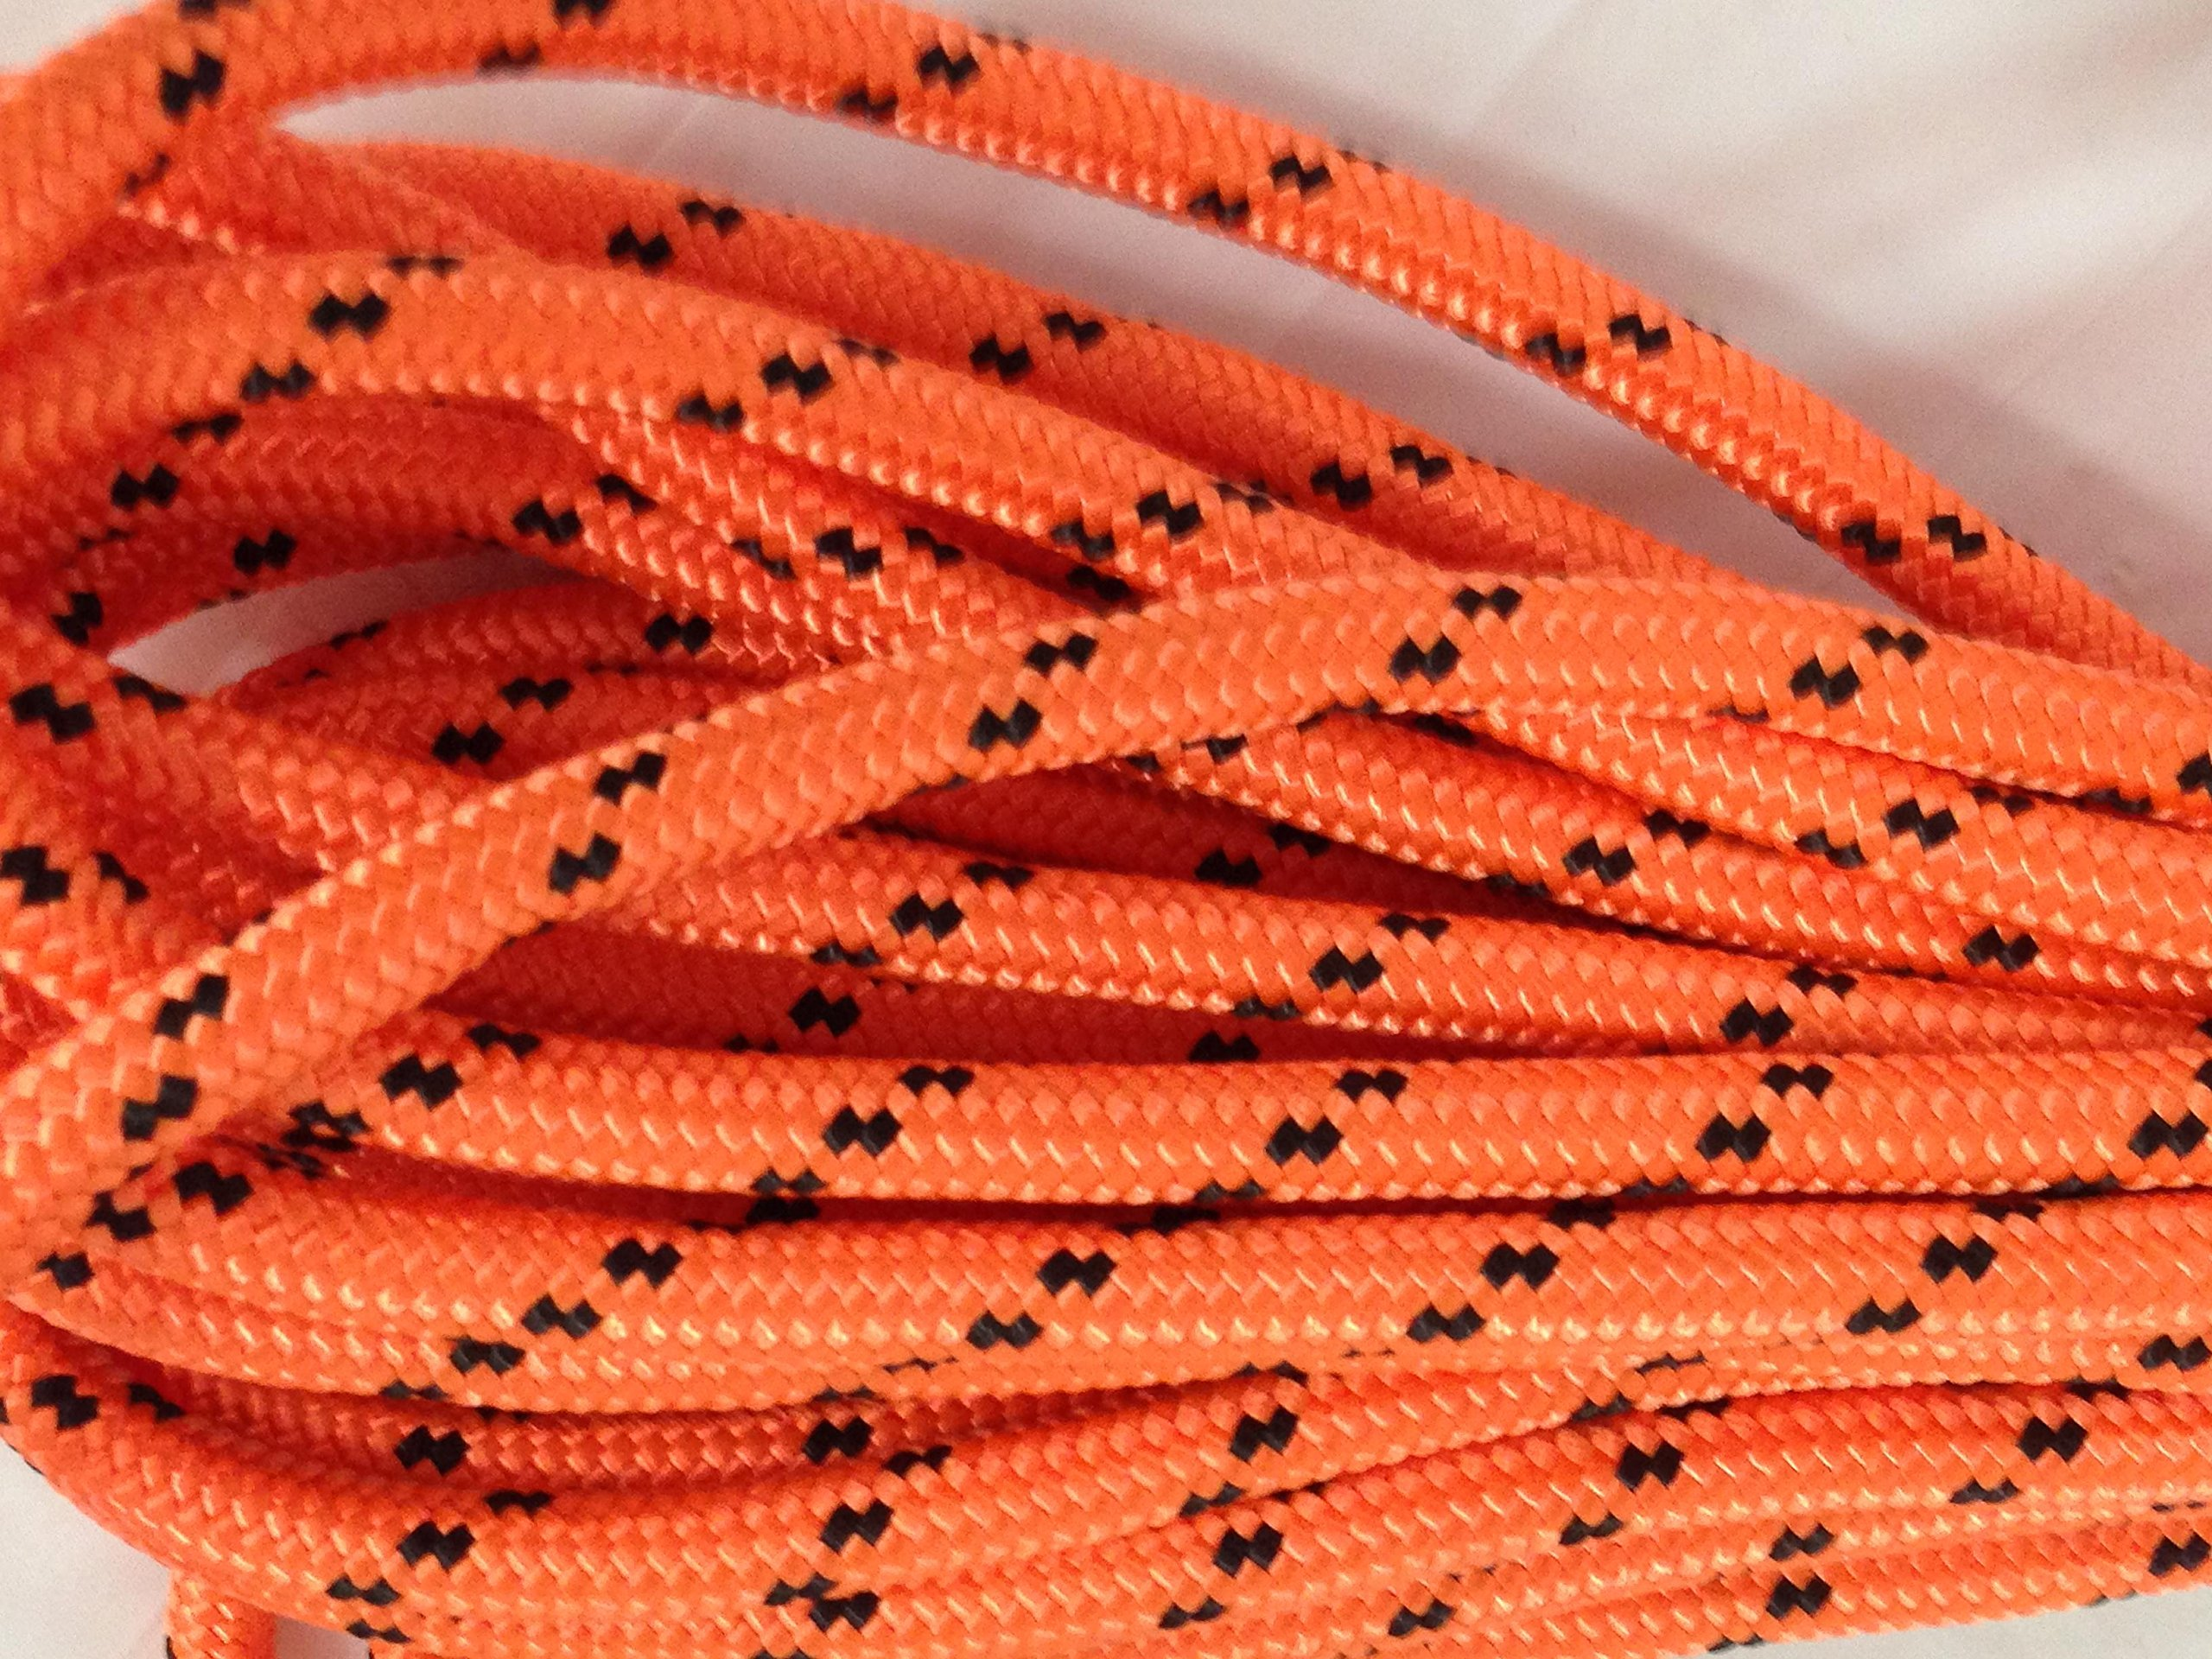 1/2'' x 100' Arborist Rigging Double Braided Polyester Rope, Orange and Black